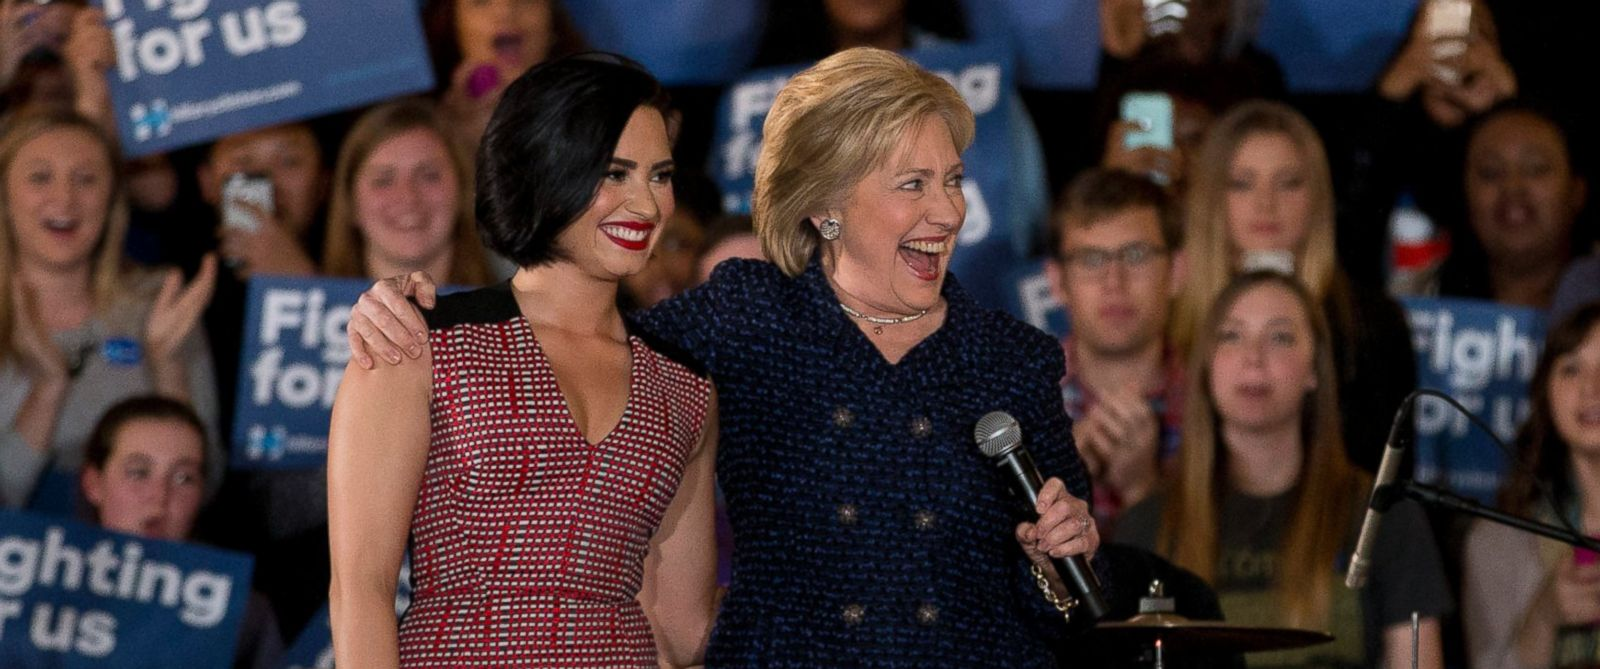 PHOTO: Democratic presidential candidate Hillary Clinton, right, and musician Demi Lovato acknowledge the cheering crowd at a rally on the campus of University of Iowa Thursday, Jan. 21, 2016, in Iowa City, Iowa.